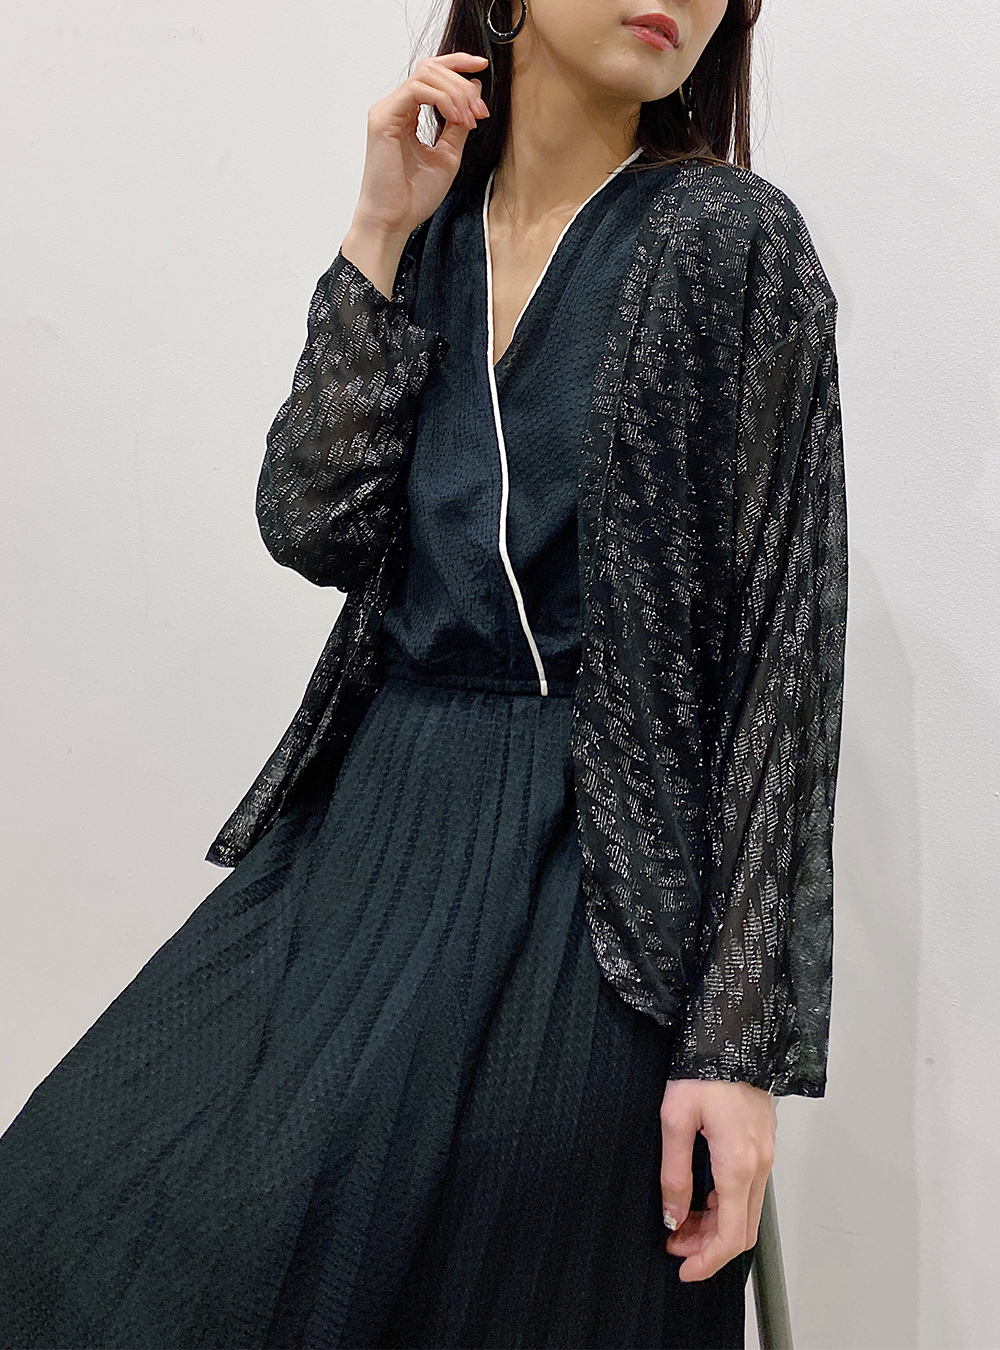 Made in EURO Sheer Glitter Cardigan